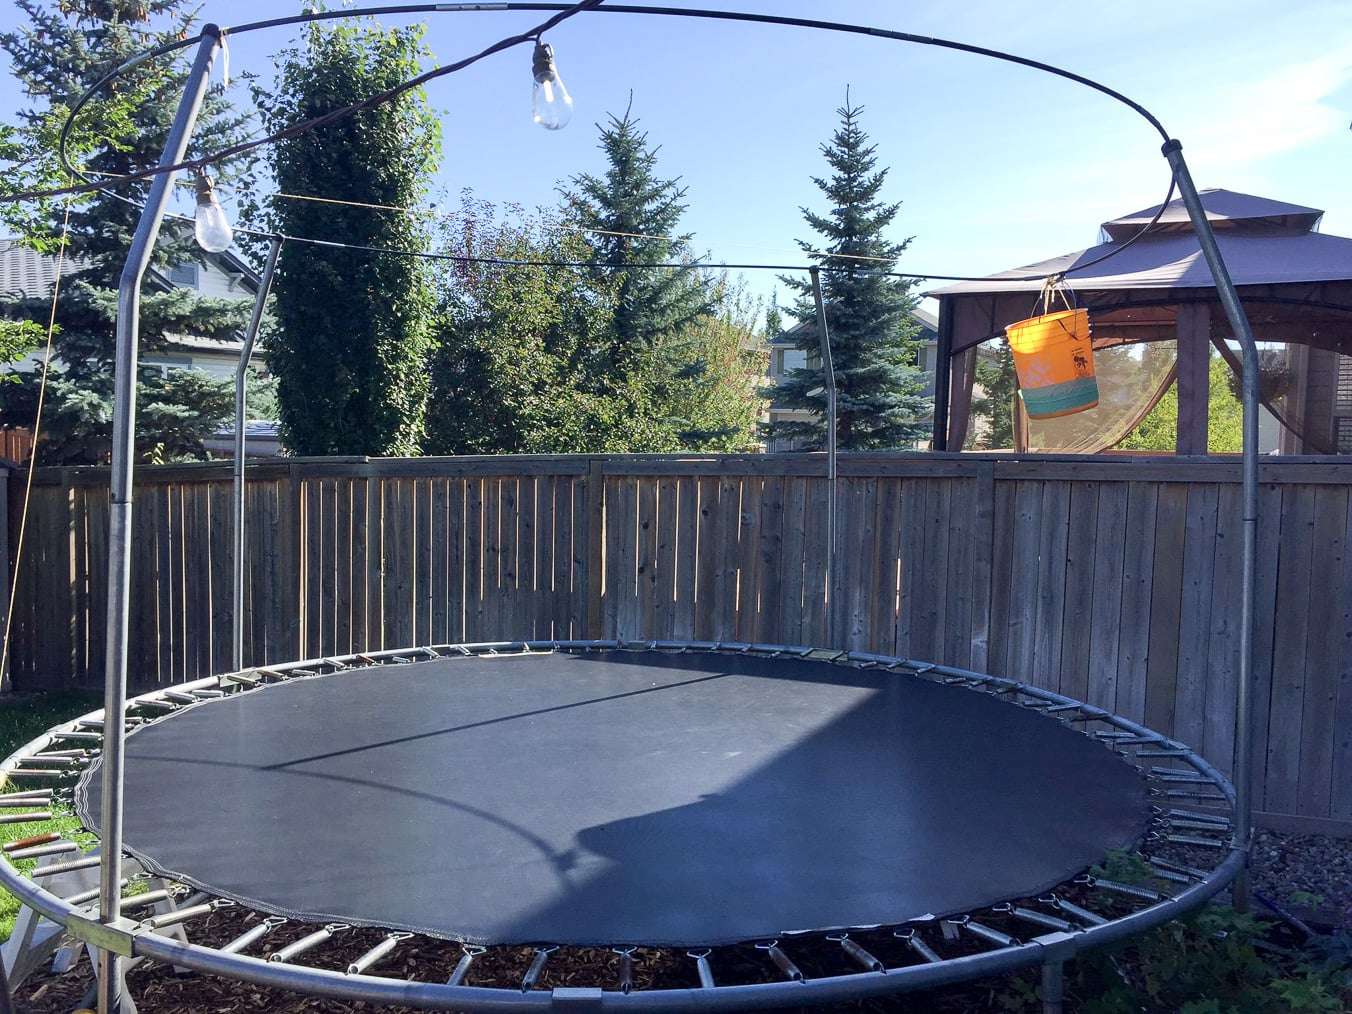 Our trampoline before we added a new Springfree Trampoline!